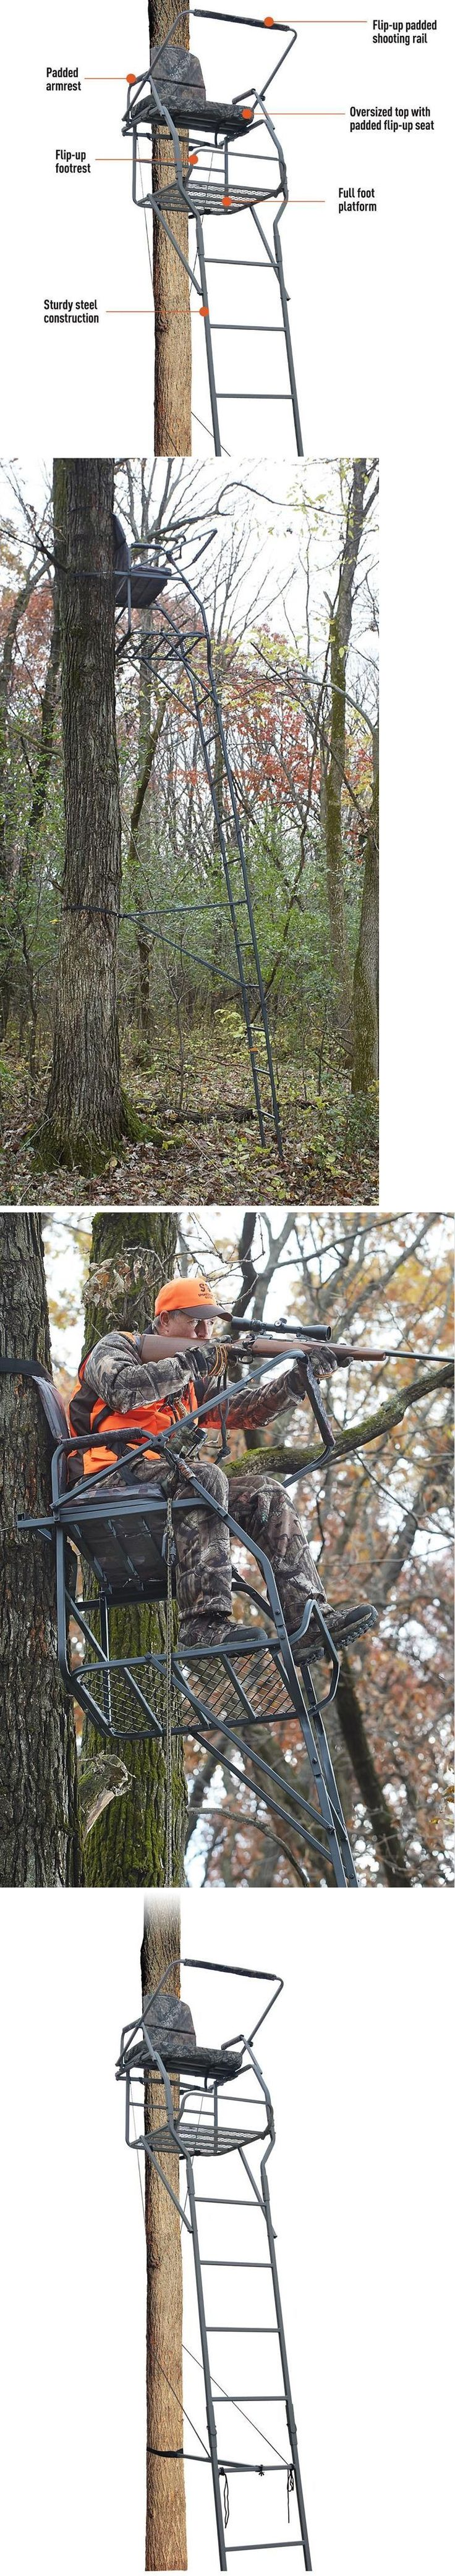 Tree Stands 52508: 18 Jumbo Ladder Tree Stand Xl Wide Seat Deer Bow Rifle Hunt Comfortable Hunting BUY IT NOW ONLY: $159.75